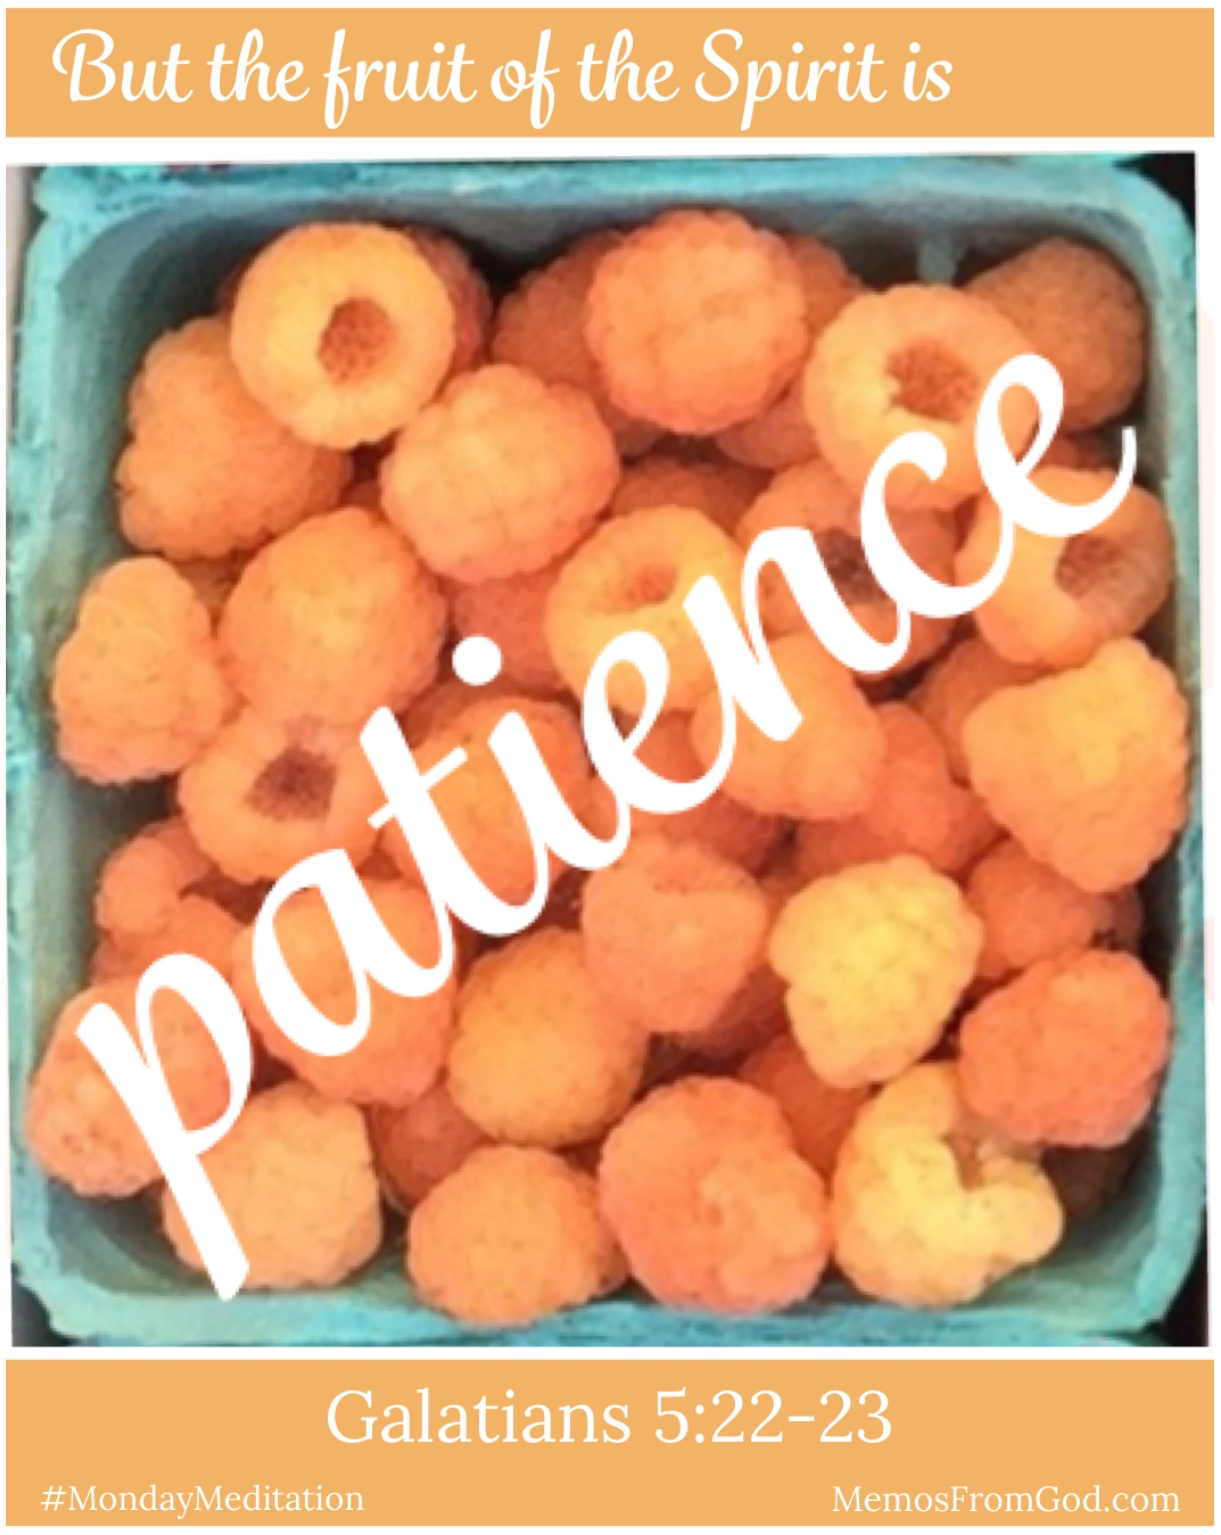 The top view of a pint box of golden raspberries. Caption: But the fruit of the Spirit is patience. Galatians 5:22-23